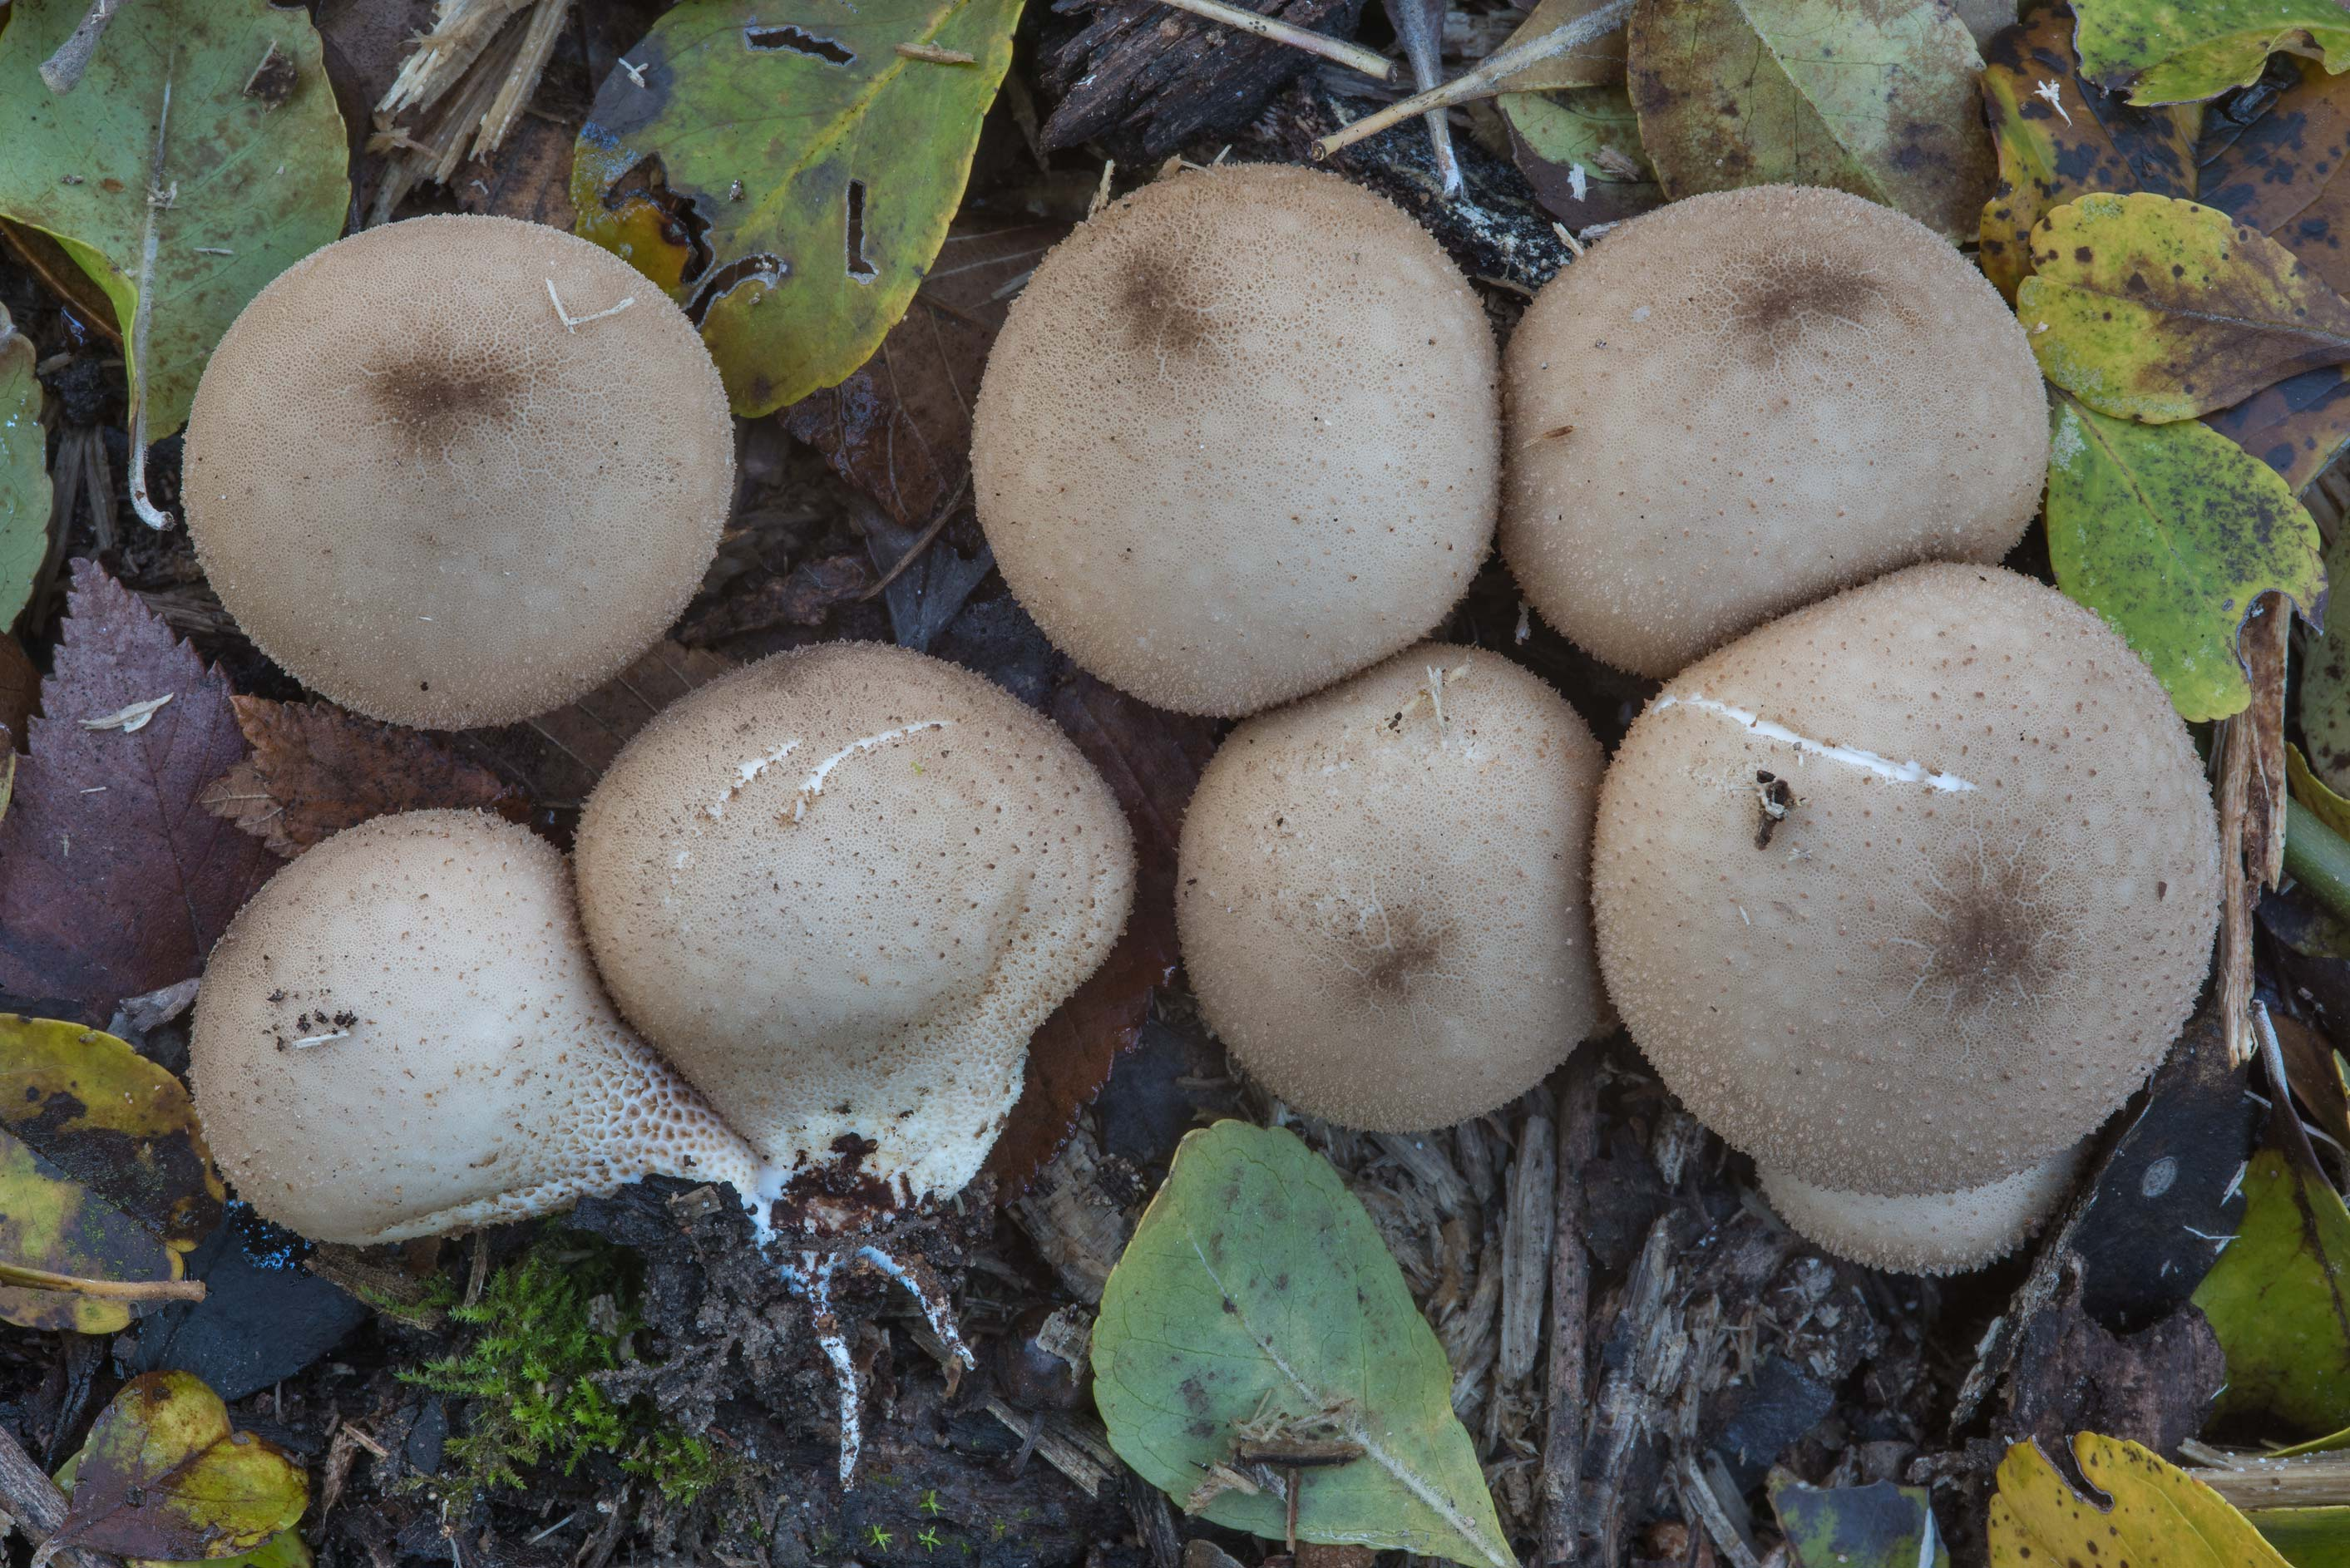 Pear-shaped puffball mushrooms (Lycoperdon...Nature Trail. College Station, Texas